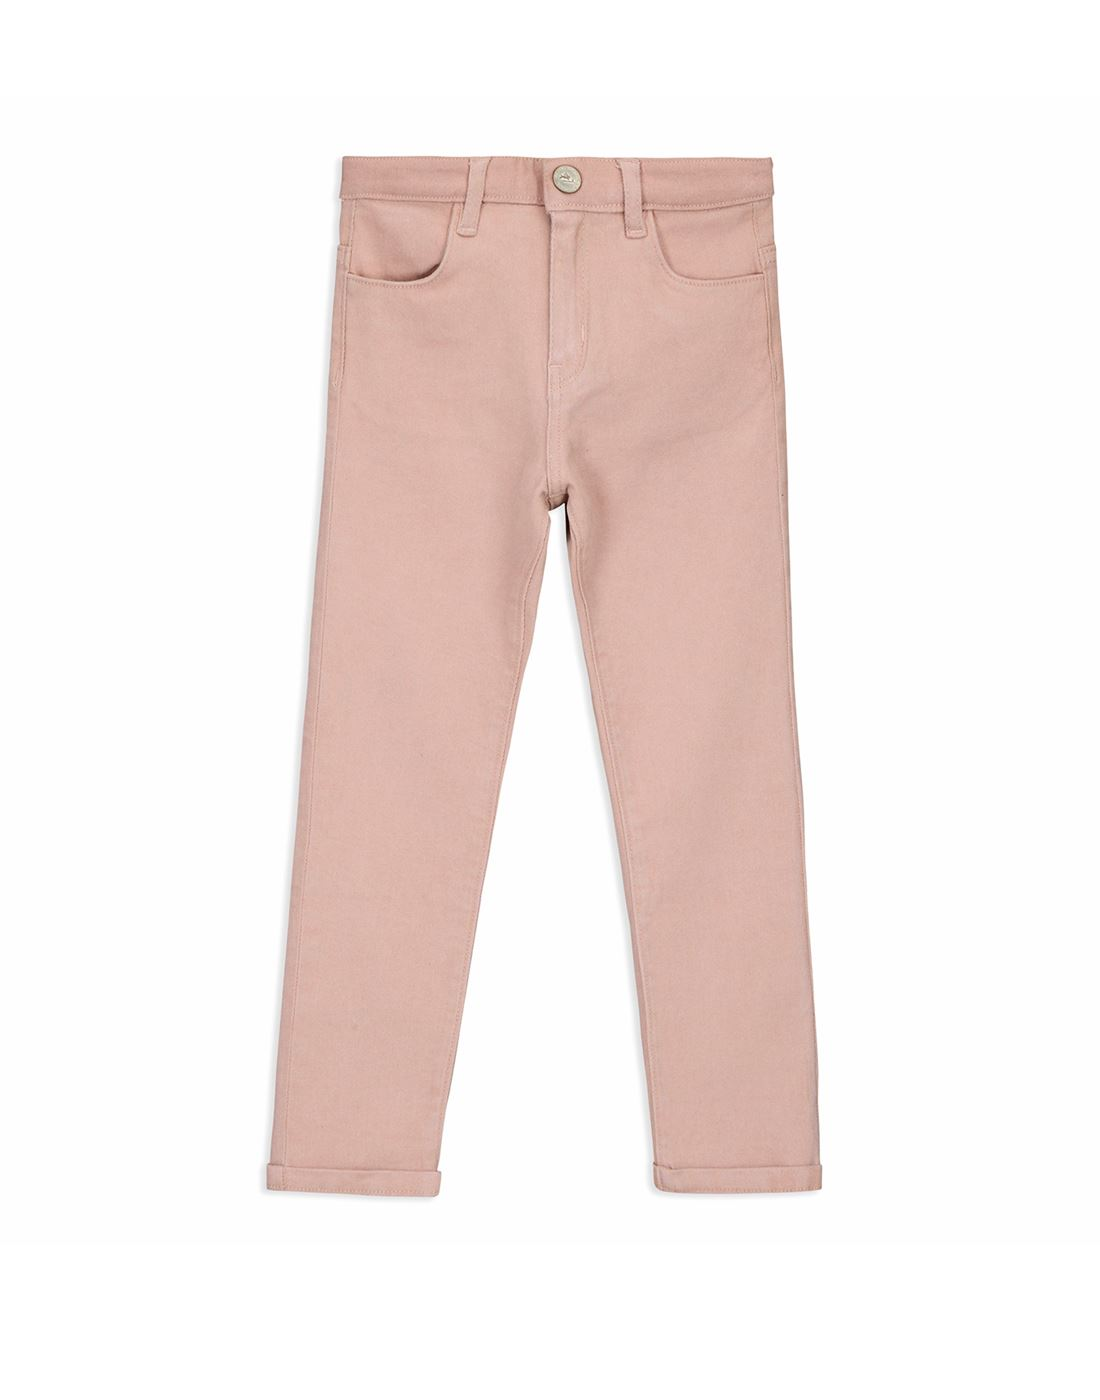 Cherry Crumble California Casual Wear Solid Girls Jeans